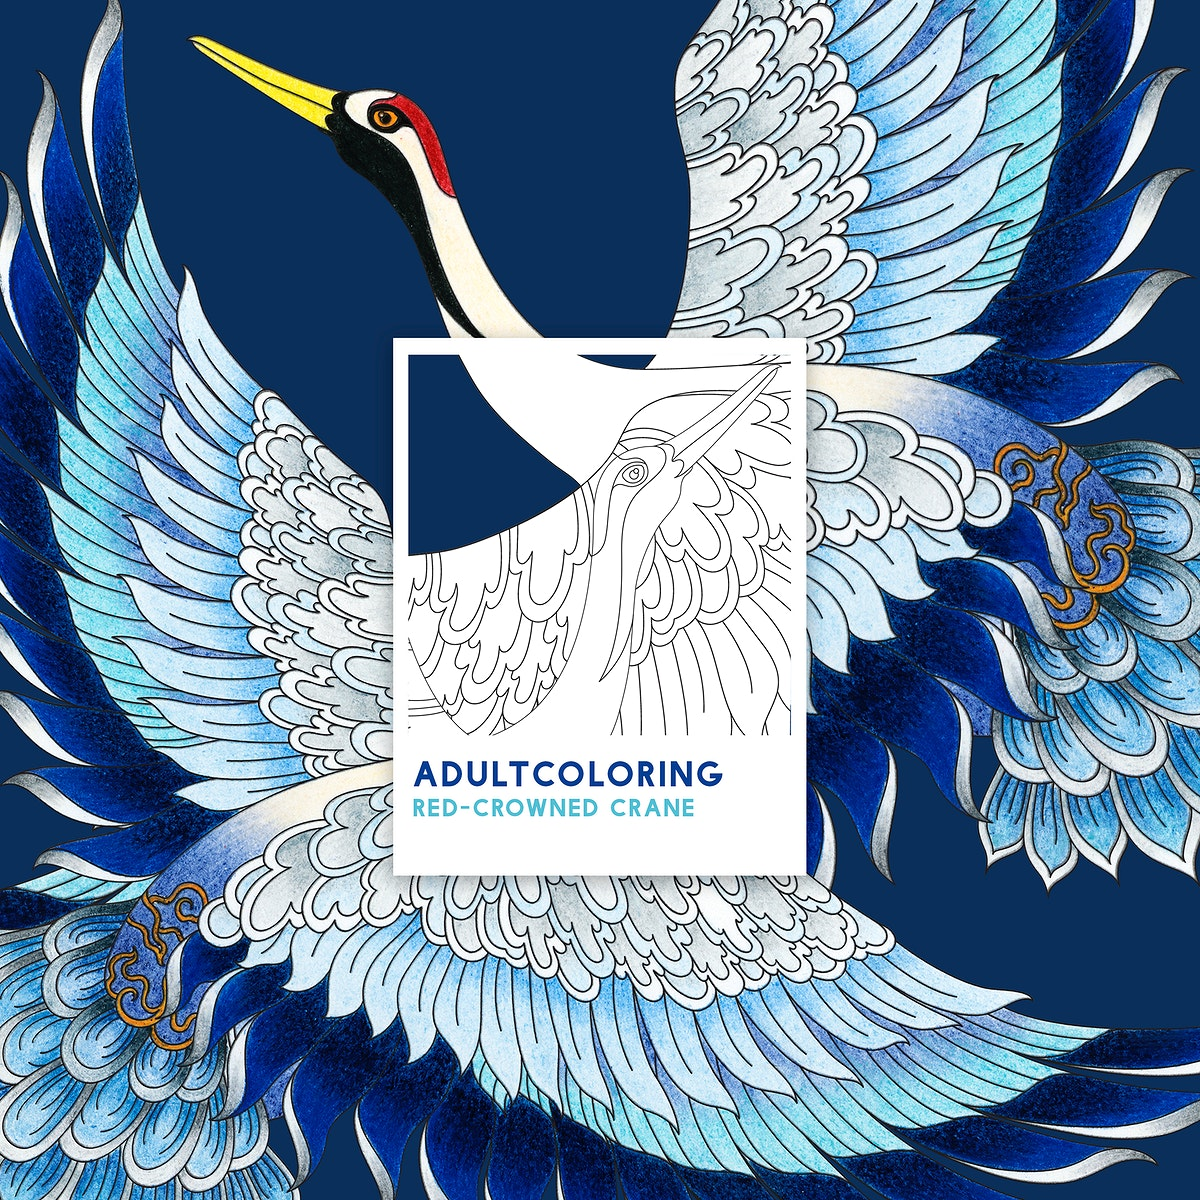 Red-crowned crane adult coloring page